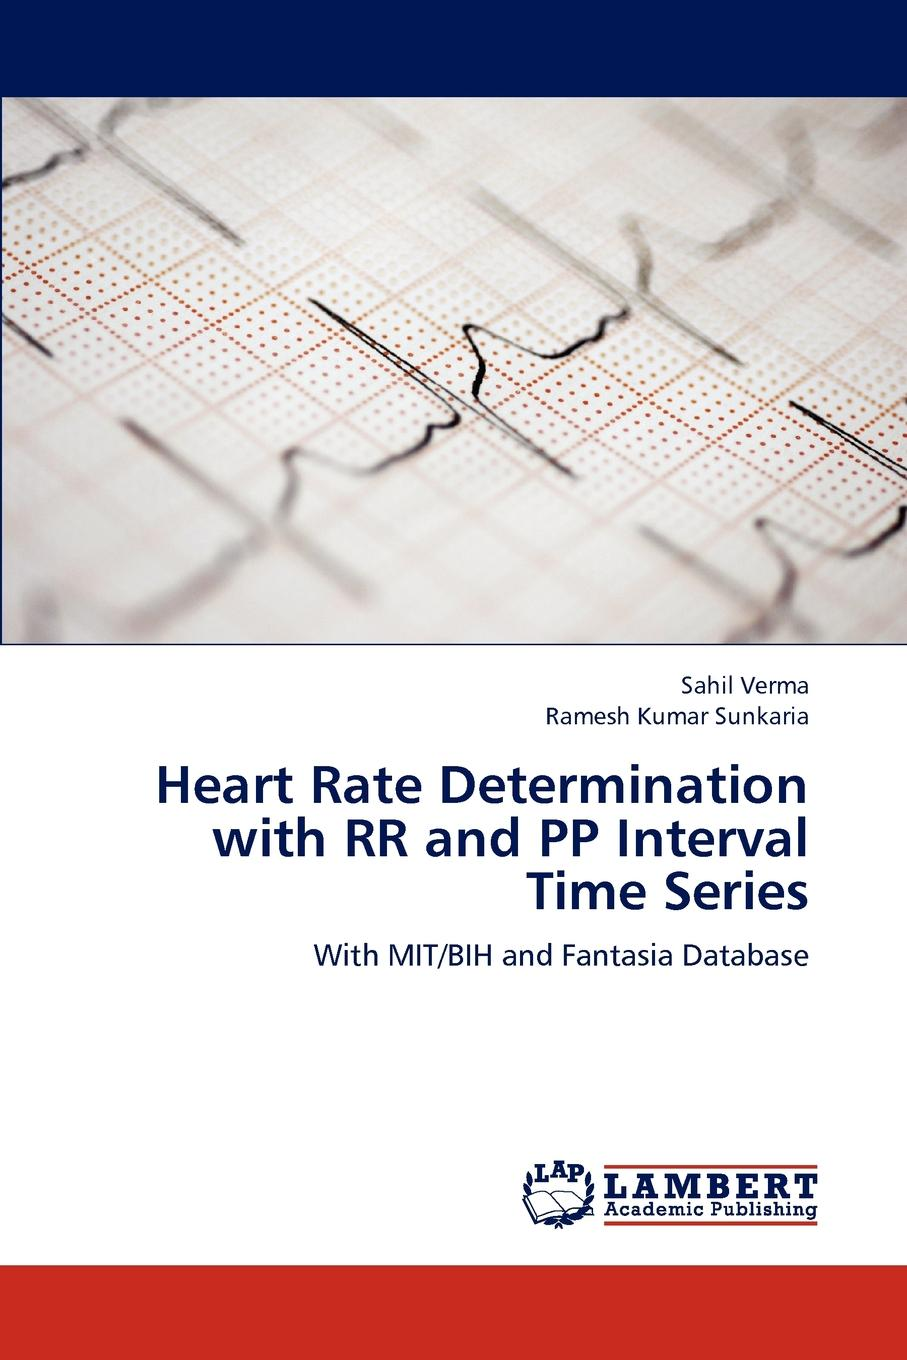 Verma Sahil, Sunkaria Ramesh Kumar Heart Rate Determination with RR and Pp Interval Time Series butta singh entropy and heart rate variability